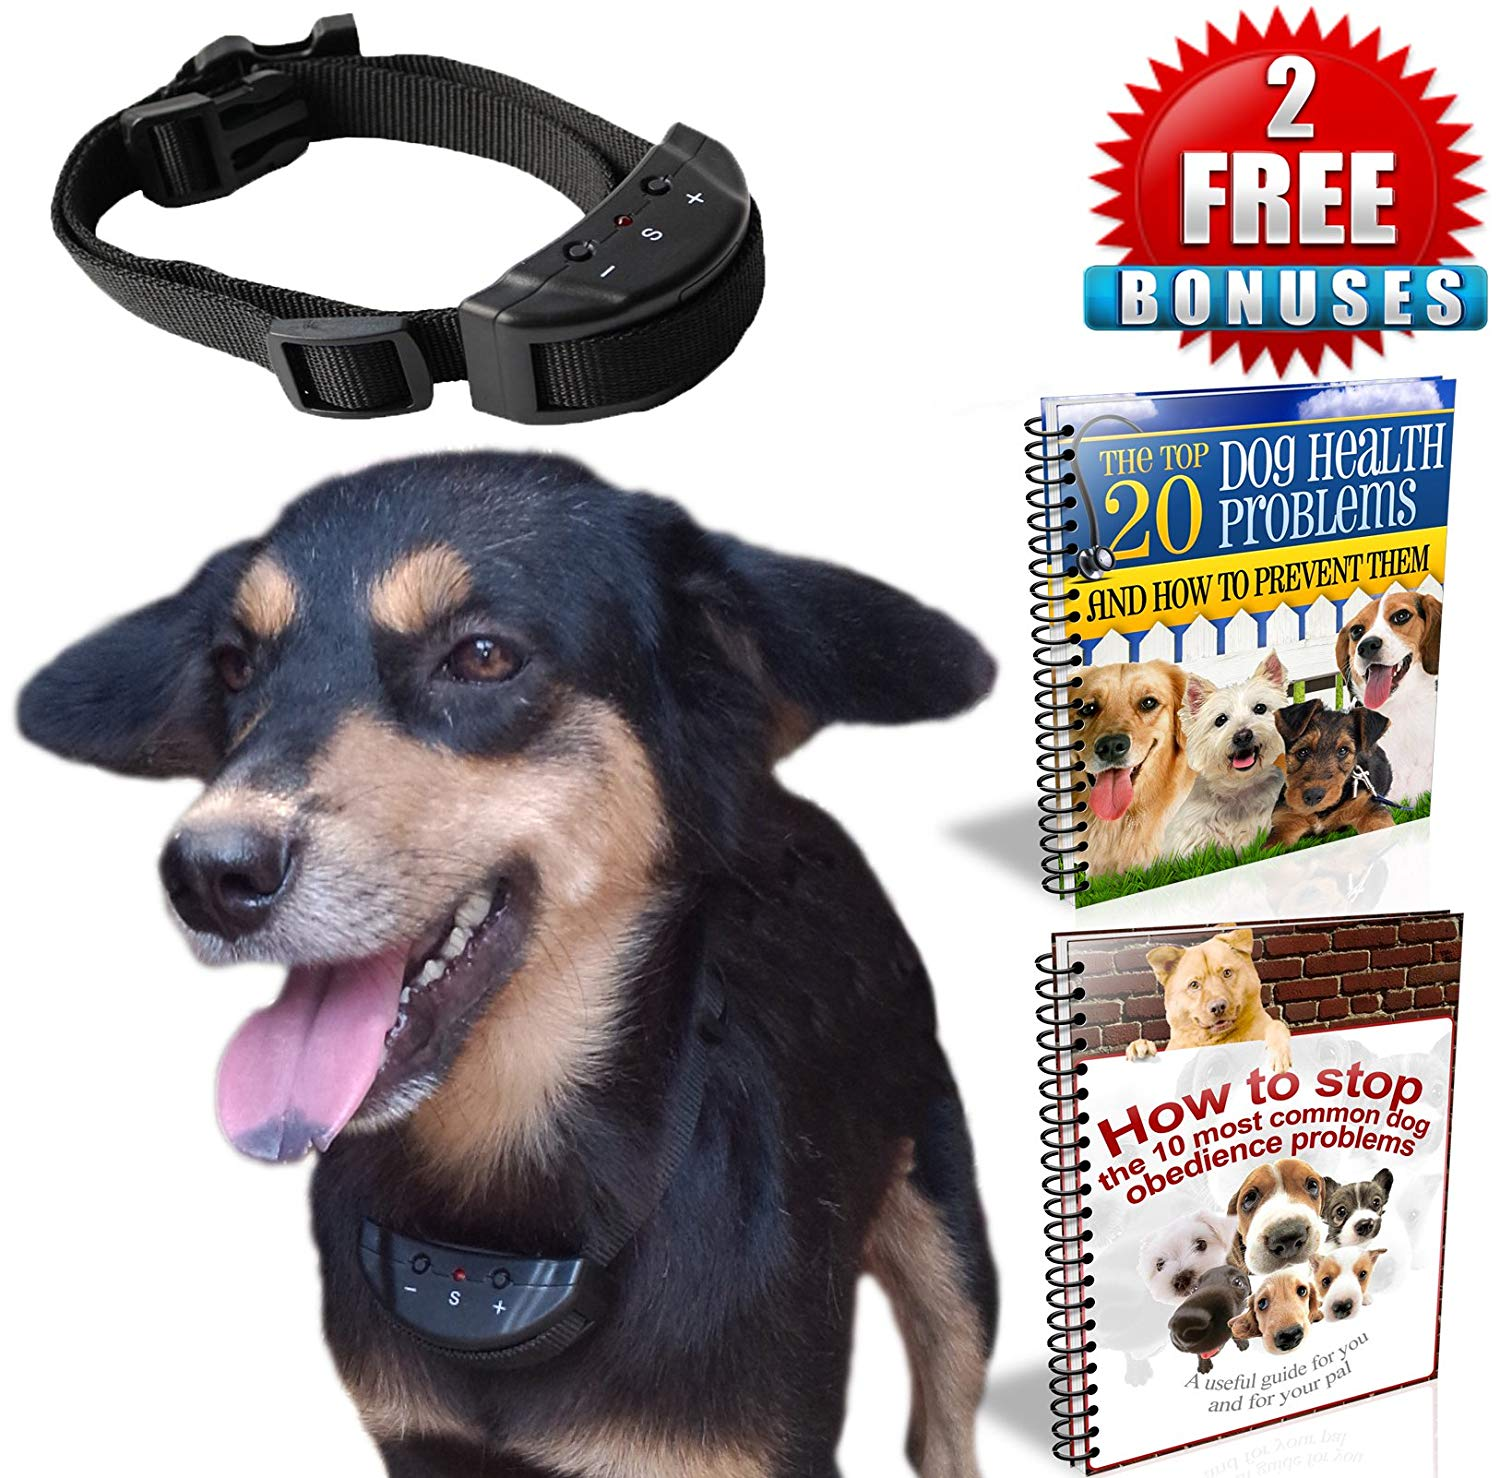 No Bark Training Electronic Anti-Bark Dog Collars from PetGoPro – Sound & Electric Static Shock E-Collar, Safe & Humane, Easy to Install, 7 Levels of Sensitivity and Designed for Small, Medium, and Large Dogs, Stop Your Dog from Barking Today!